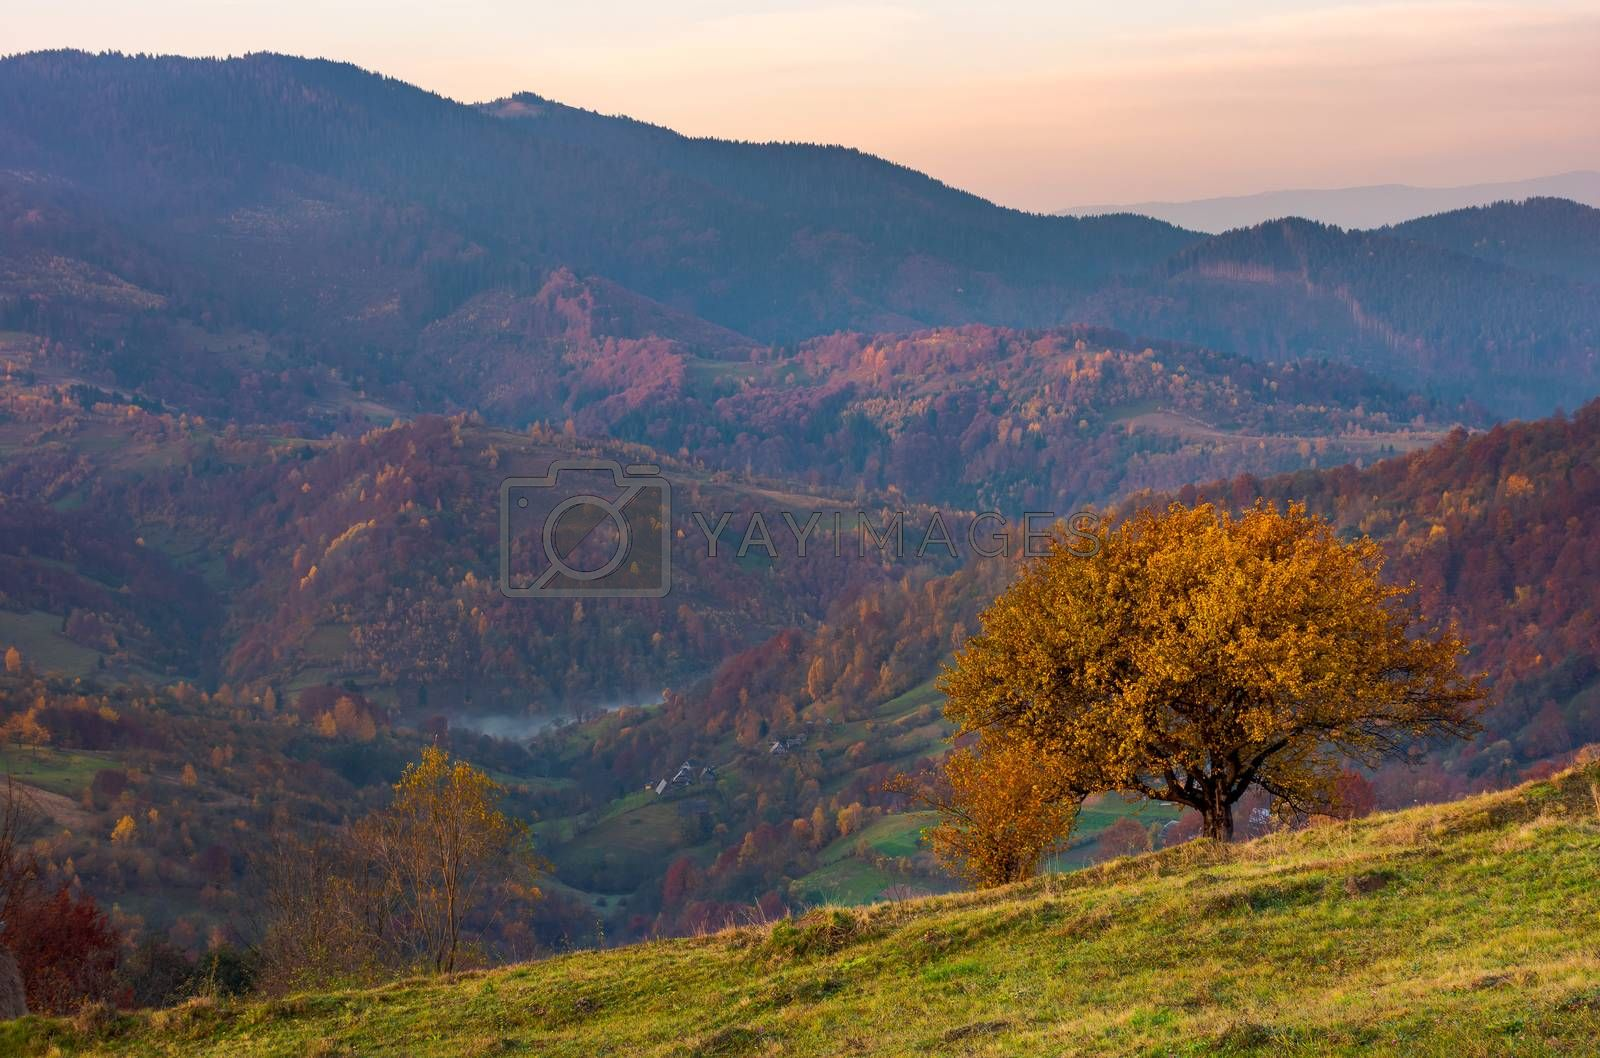 tree on a grassy hillside in autumn mountains. beautiful scenery at dawn. small village down the hill in valley